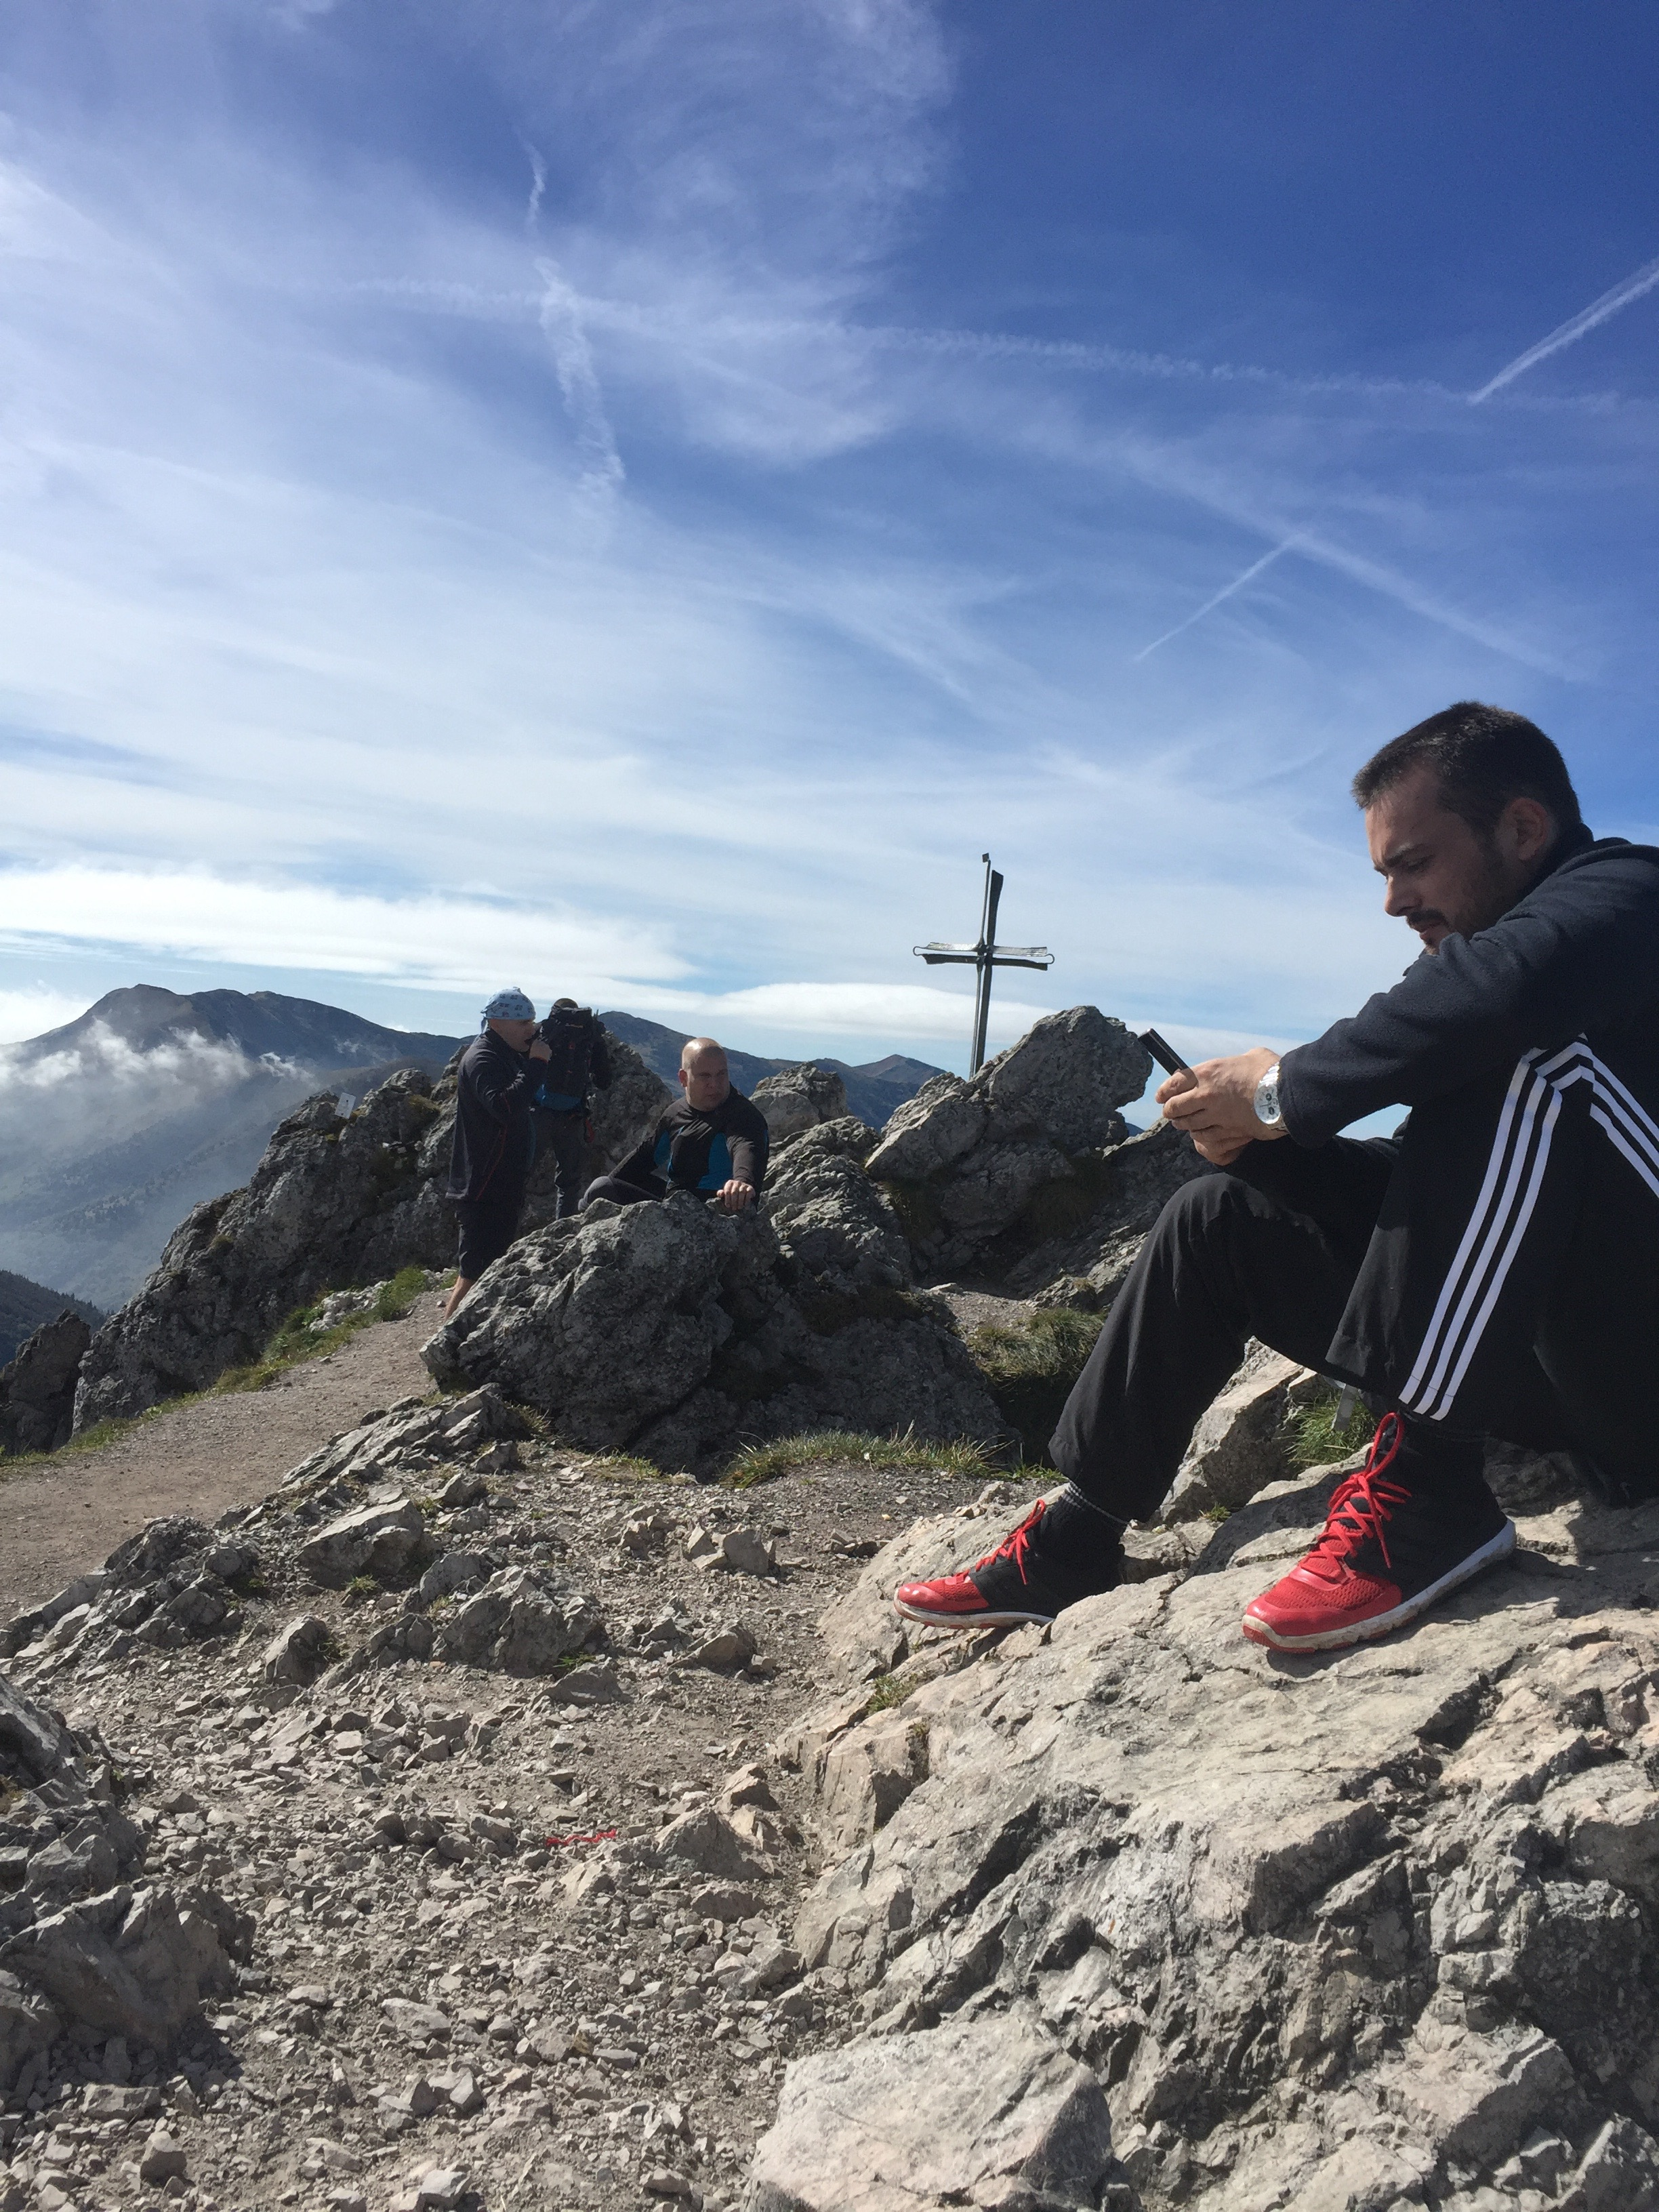 On top of one of the peaks on the Malá Fatra.